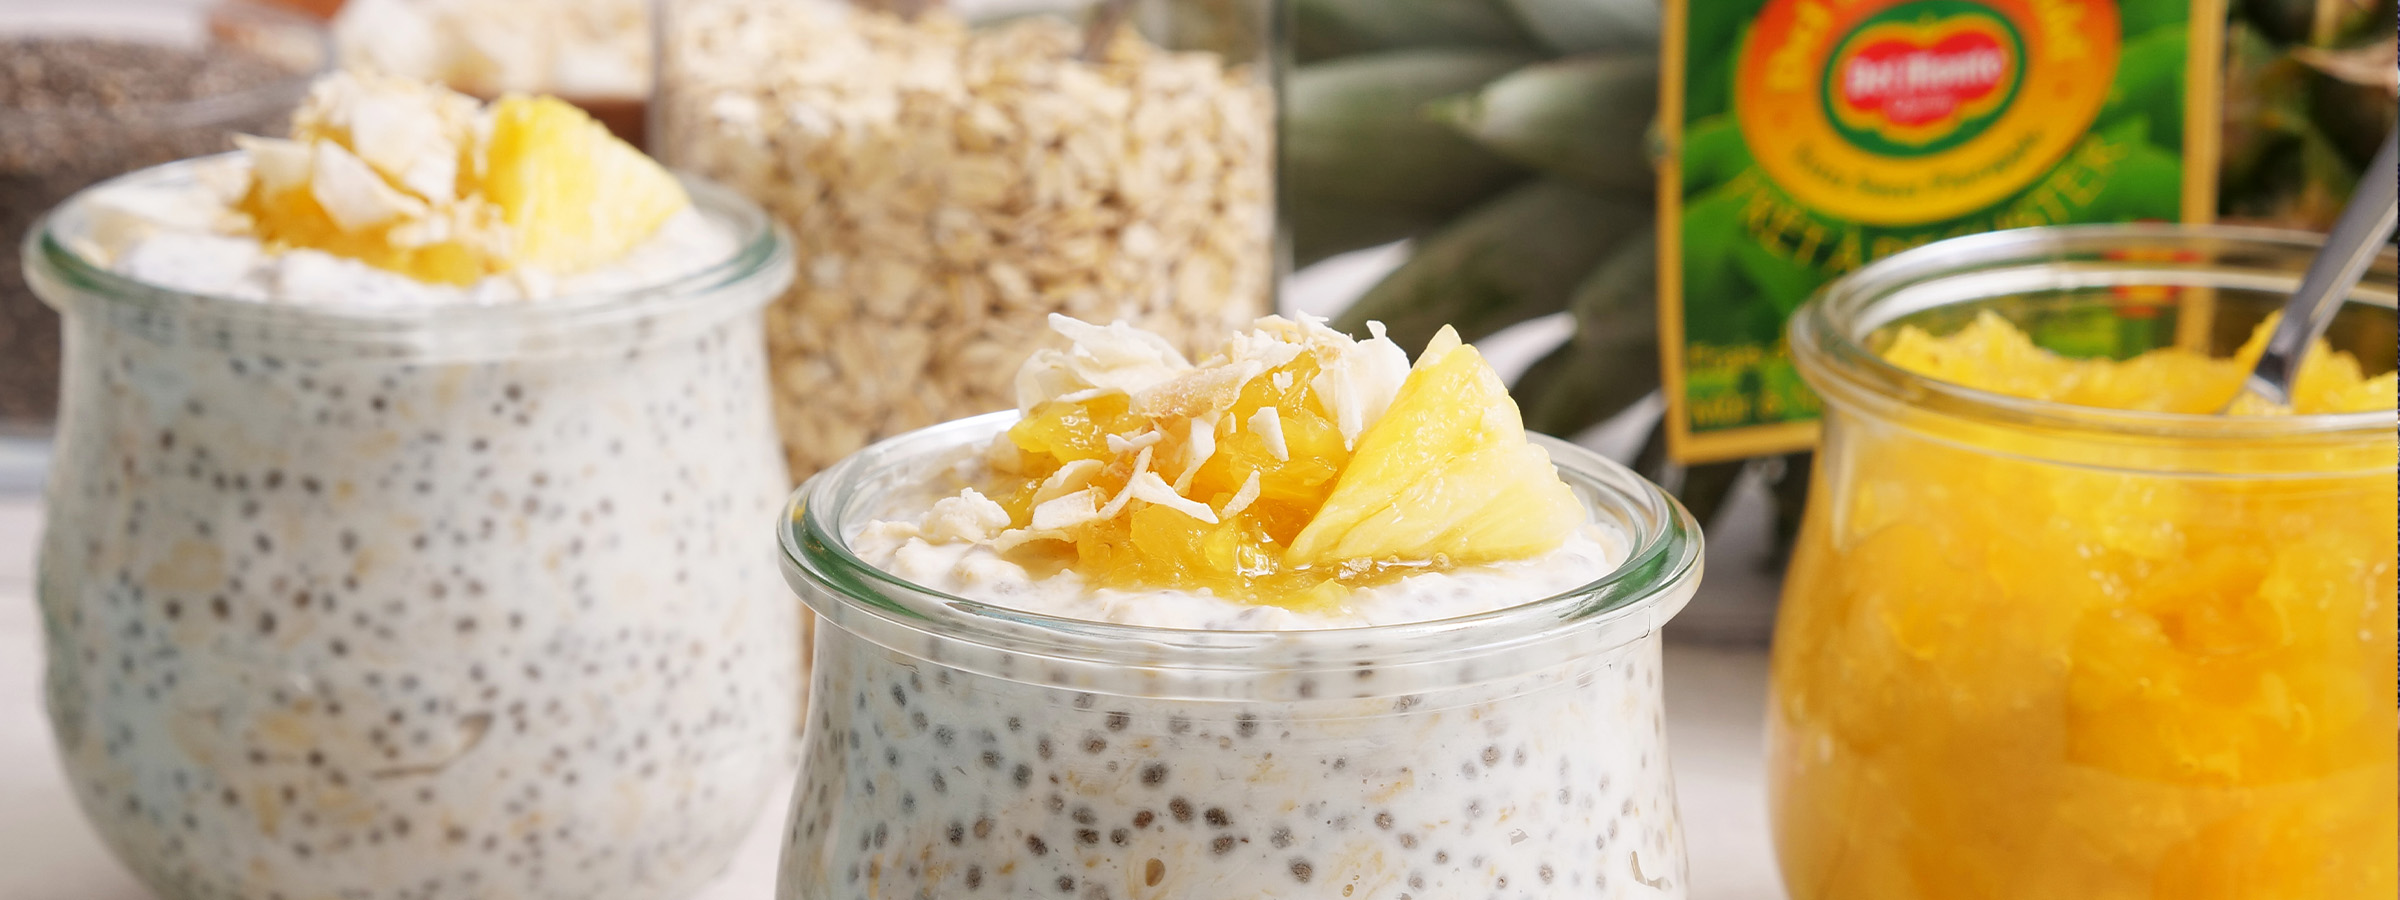 Homepage-Banner_Try-Our-Recipes_Coconut-Overnight-Oats-with-Pineapple-Ginger-Jam_Dec-2019